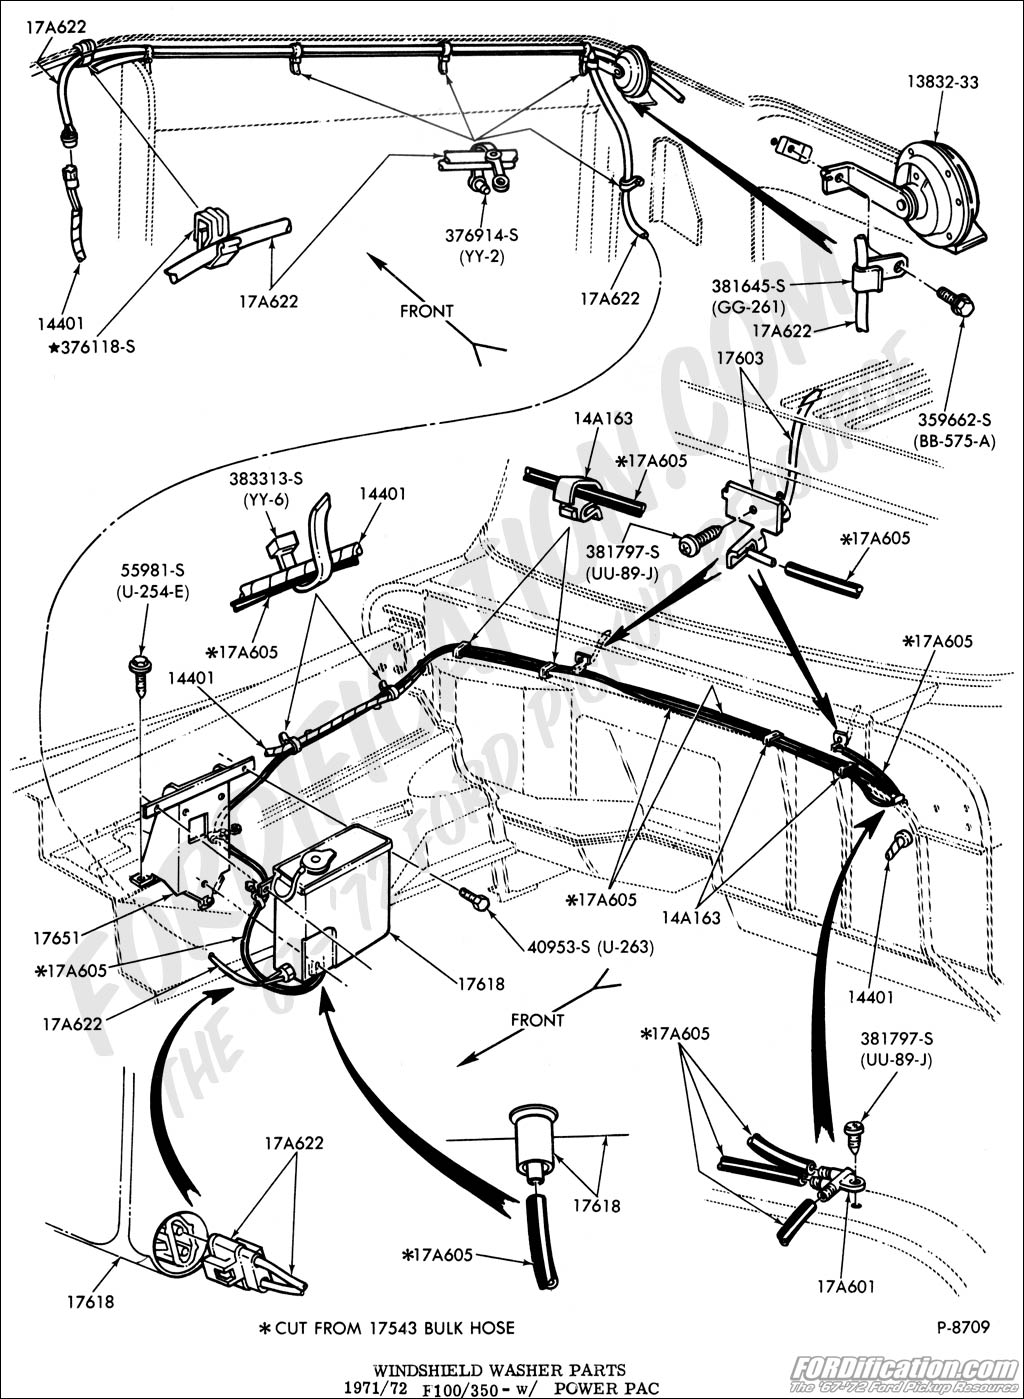 windshieldwshr pwrpak 2001 ford f250 wiring diagram 2001 ford f250 wiring diagram for 2010 F350 at readyjetset.co